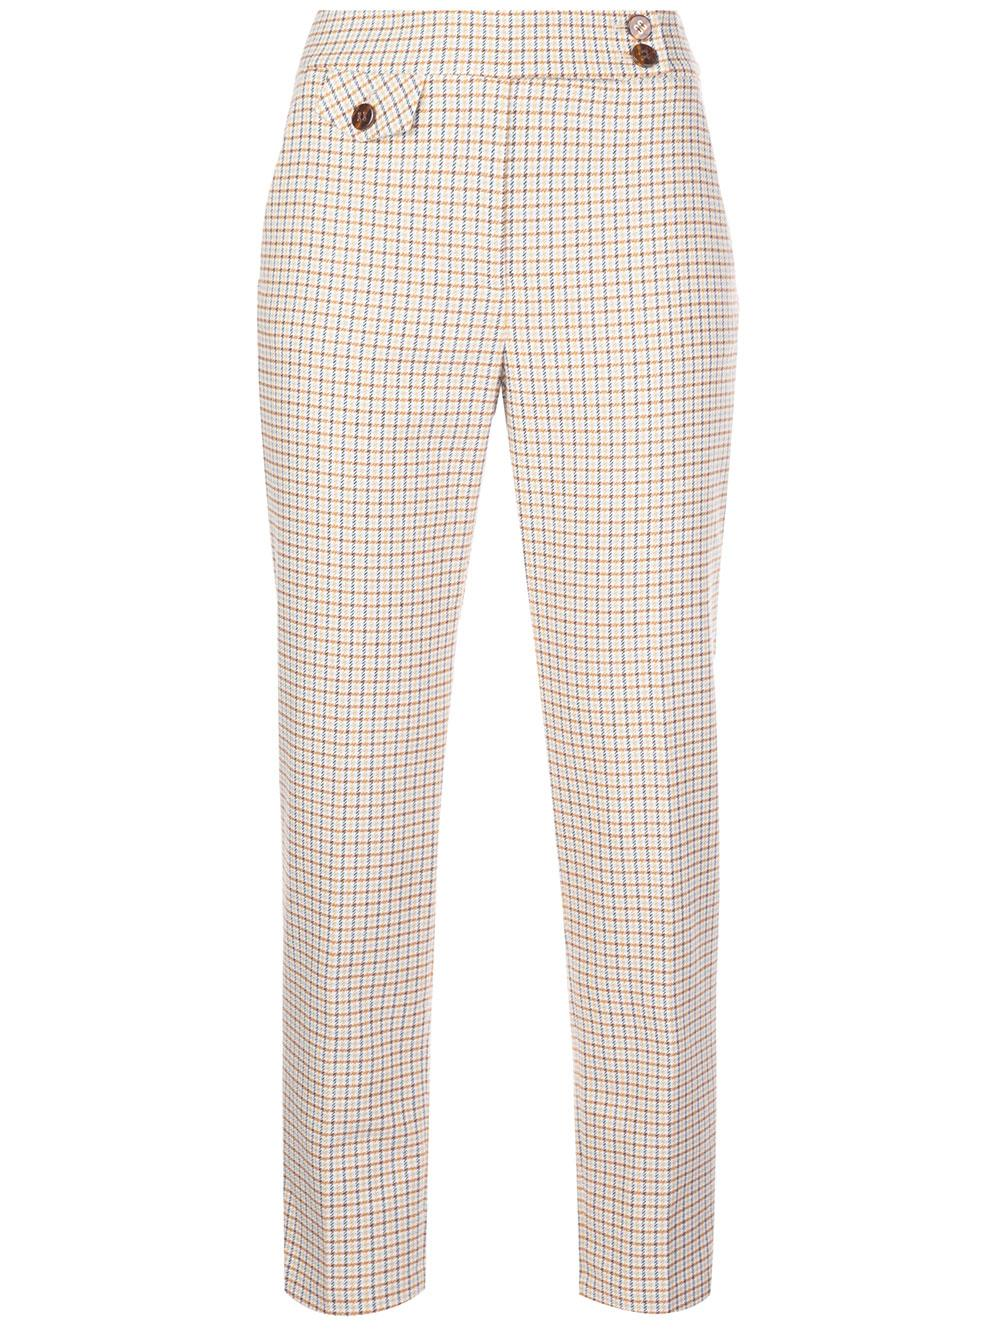 Renzo Check Cropped Pant Item # 1911HT0086409